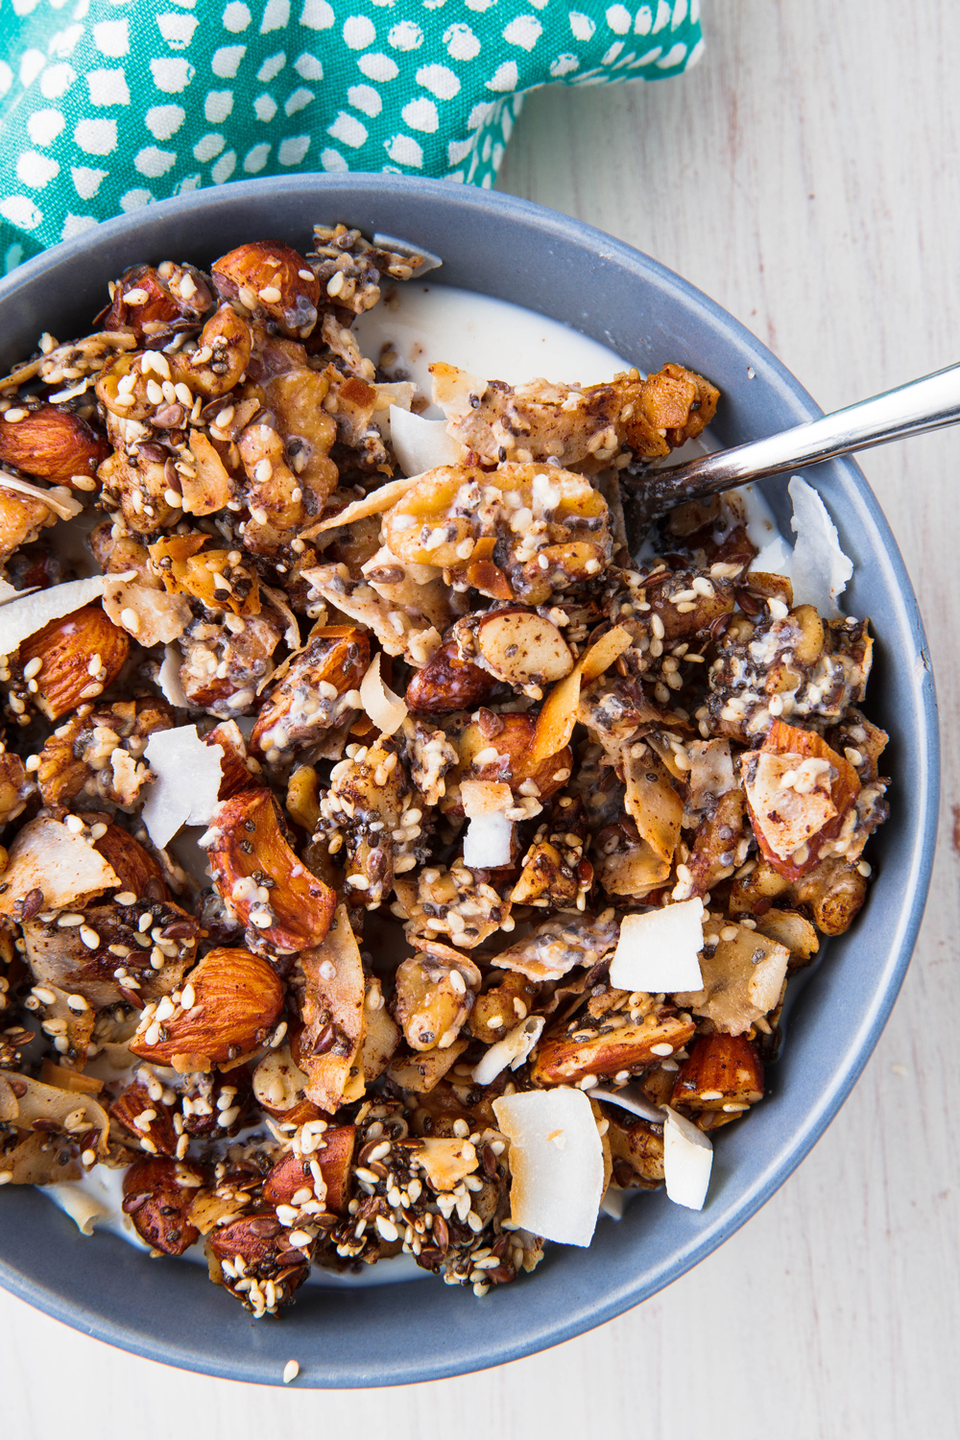 "<p>A big batch makes for an easy breakfast all week long. </p><p>Get the recipe from <a href=""https://www.delish.com/cooking/recipe-ideas/a25238263/keto-cereal-recipe/"" rel=""nofollow noopener"" target=""_blank"" data-ylk=""slk:Delish"" class=""link rapid-noclick-resp"">Delish</a>. </p>"